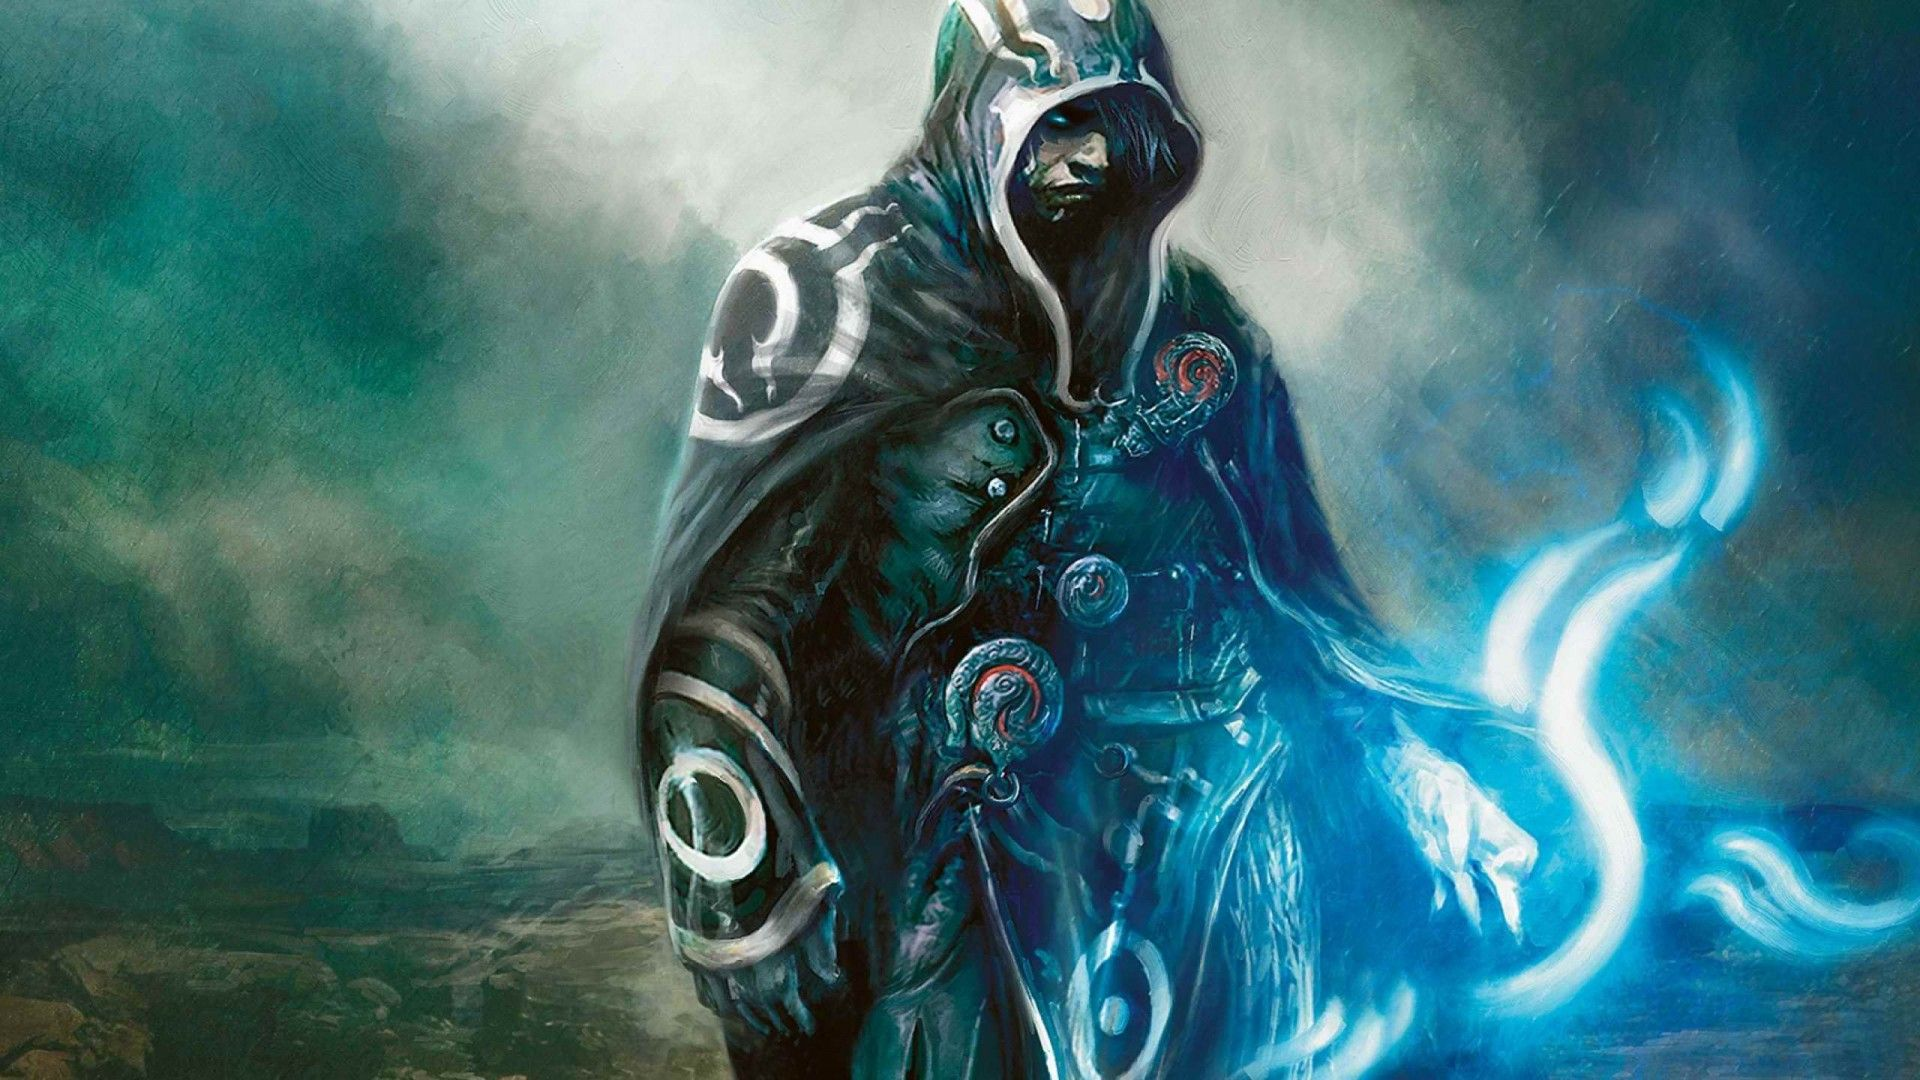 Magic Wallpaper 1920 X 1080 Magic The Gathering Jace Beleren